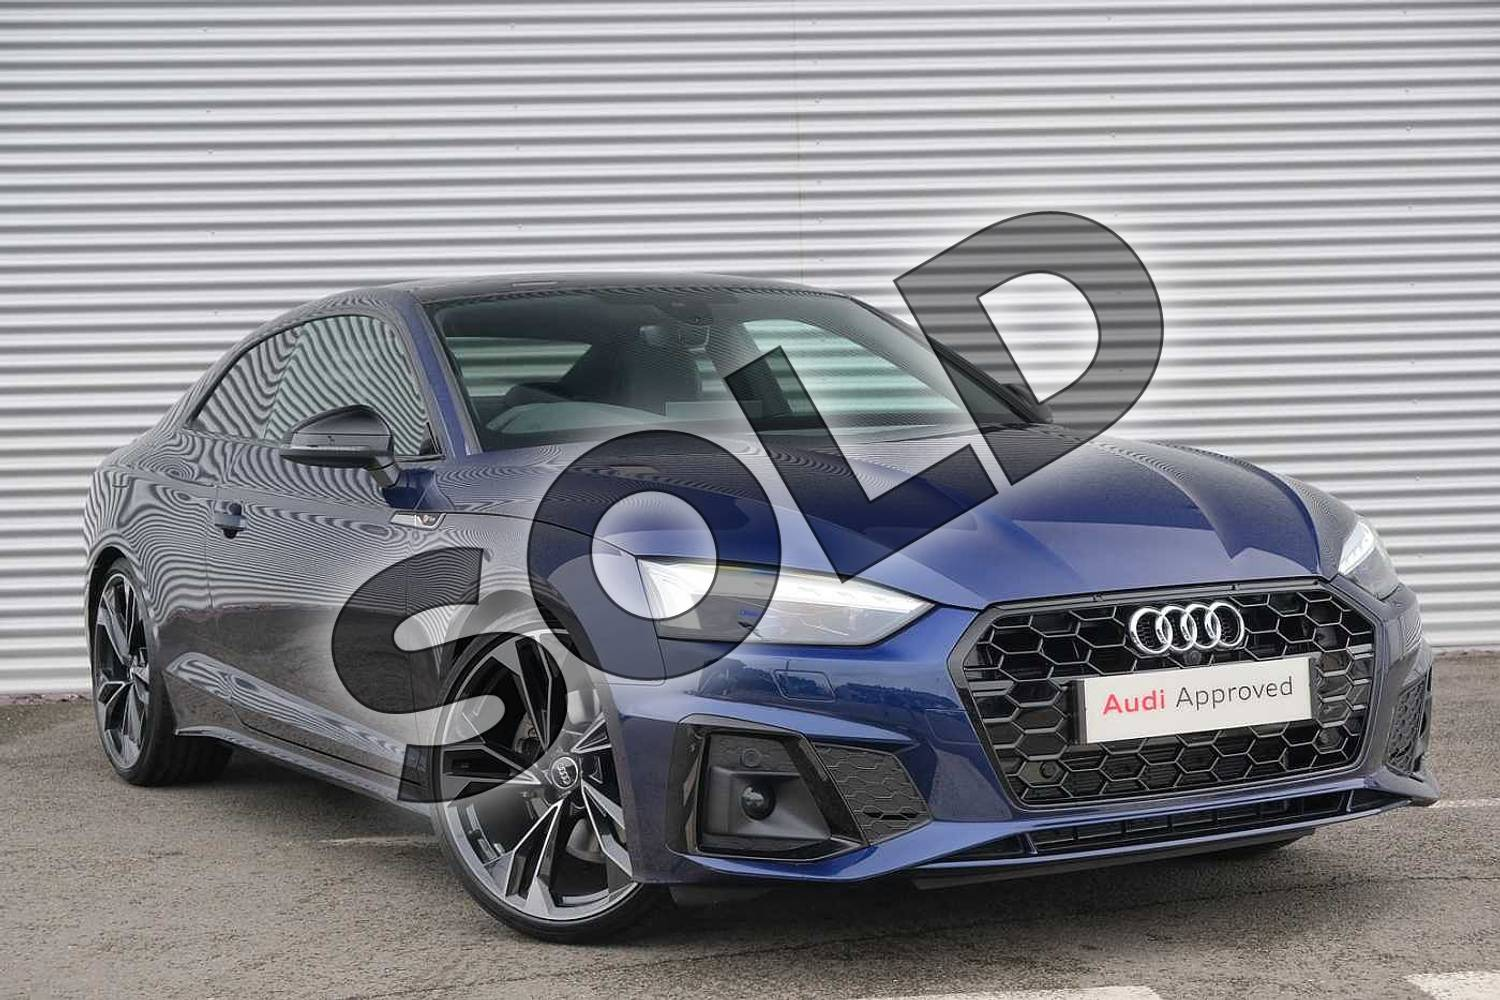 Audi A5 35 Tdi Edition 1 2dr S Tronic For Sale At Coventry Audi Ref 021 U167585